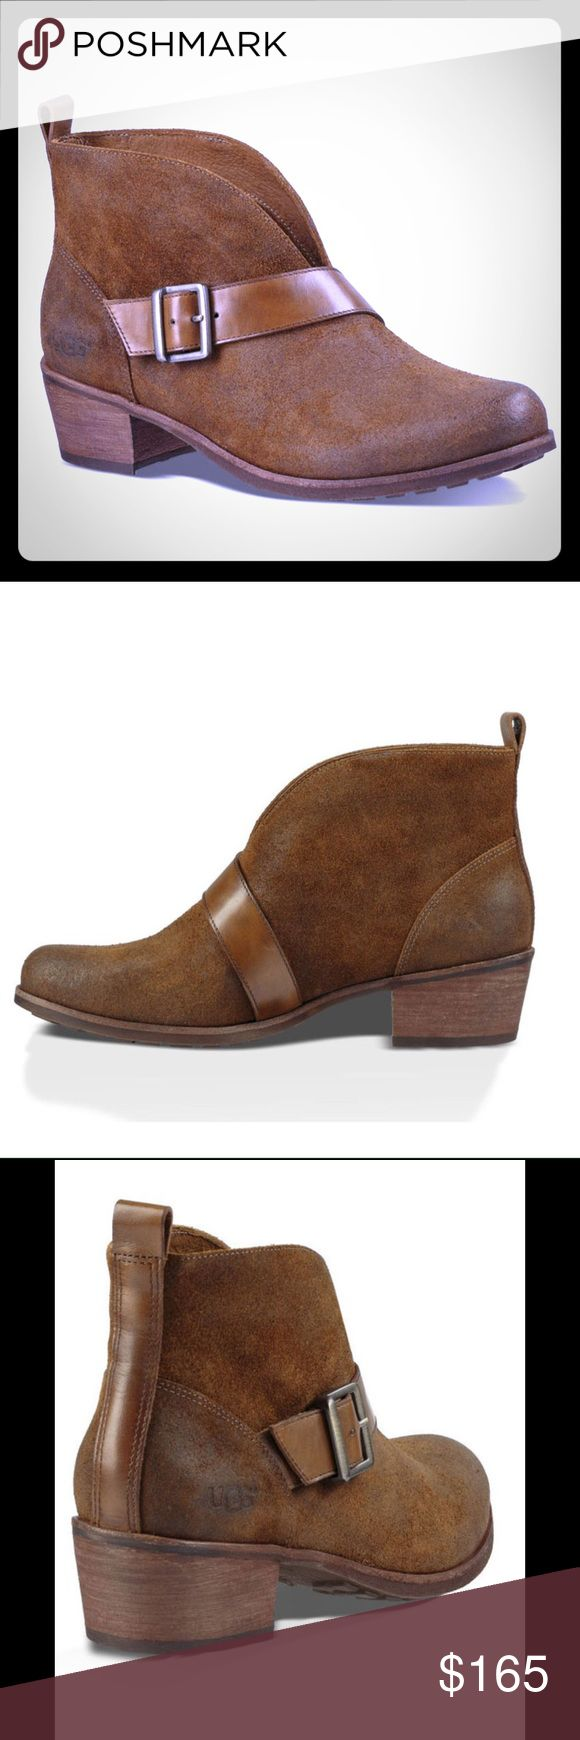 """UGG Wright Belted Booties New with box. Never worn. Retail $185. A dramatic V-split boot shaft and an asymmetrical buckle strap give this distressed leather bootie downtown street cred while a genuine shearling footbed provides all-day comfort. Chestnut color. 1 3/4"""" heel height. 4"""" bootie shaft. Size 6. No trades/modeling. Reasonable offers welcome via the offer button. UGG Shoes Ankle Boots & Booties"""